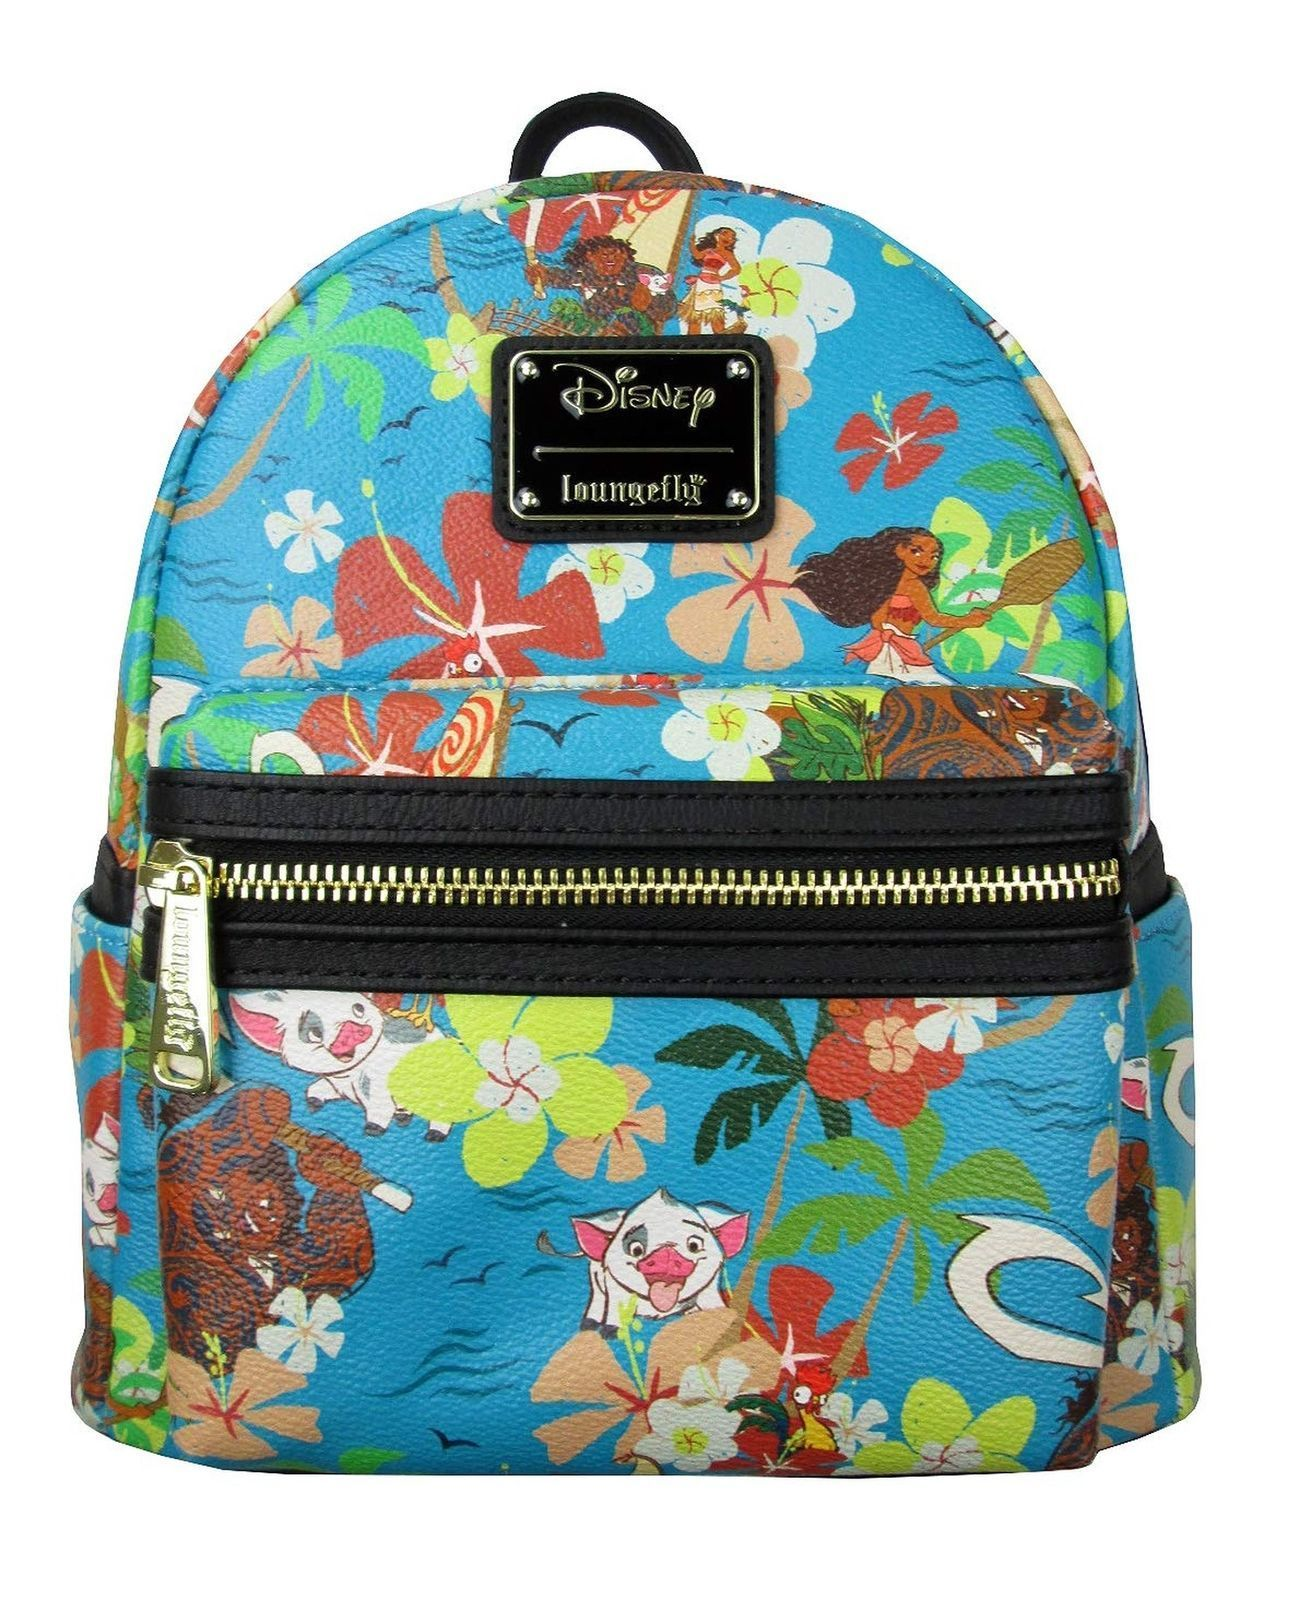 d4a00742be4 25th Anniversary The Nightmare Before Christmas Mini Backpack - Disney x  Loungefly - Lulabites